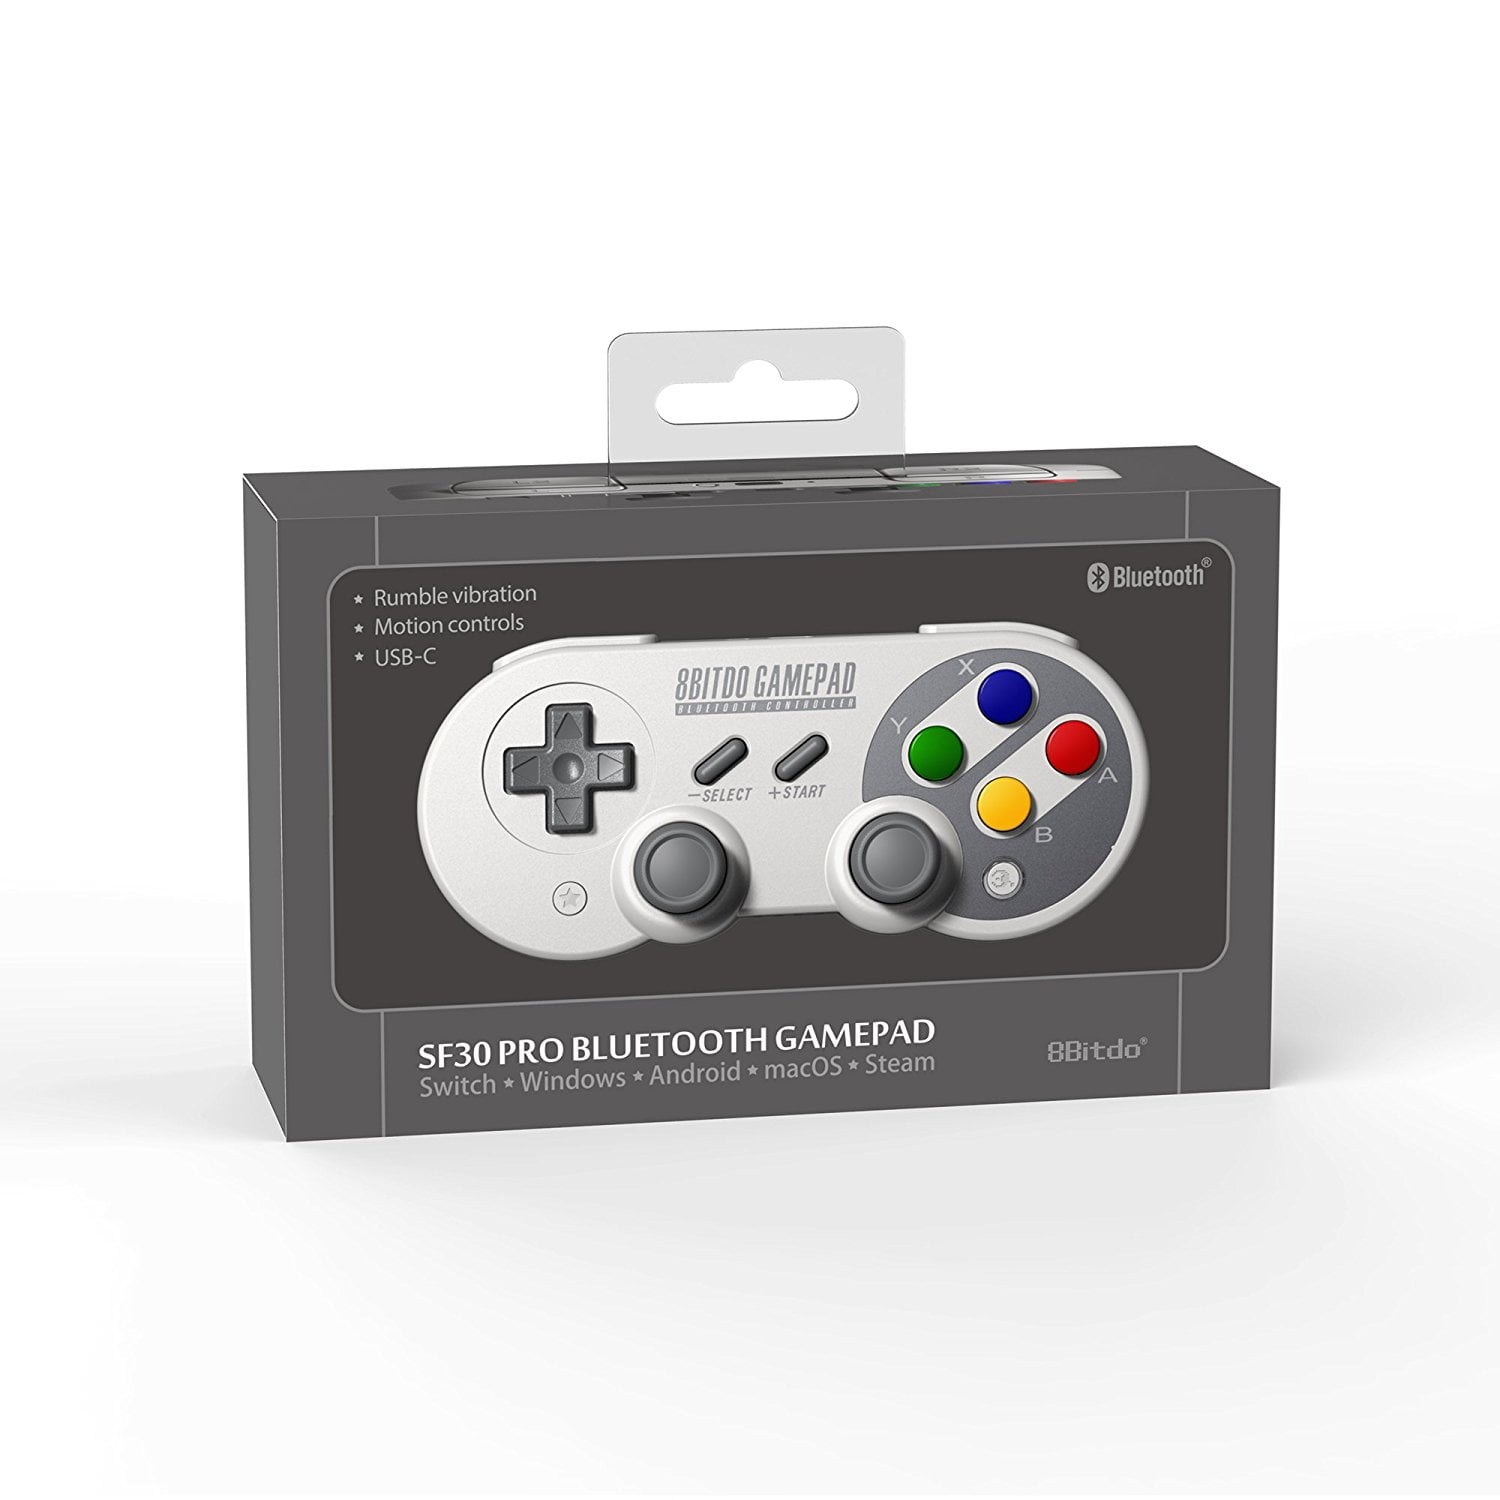 pr commande la manette snes pour switch 8bitdo sfc30 pro chez amazon. Black Bedroom Furniture Sets. Home Design Ideas